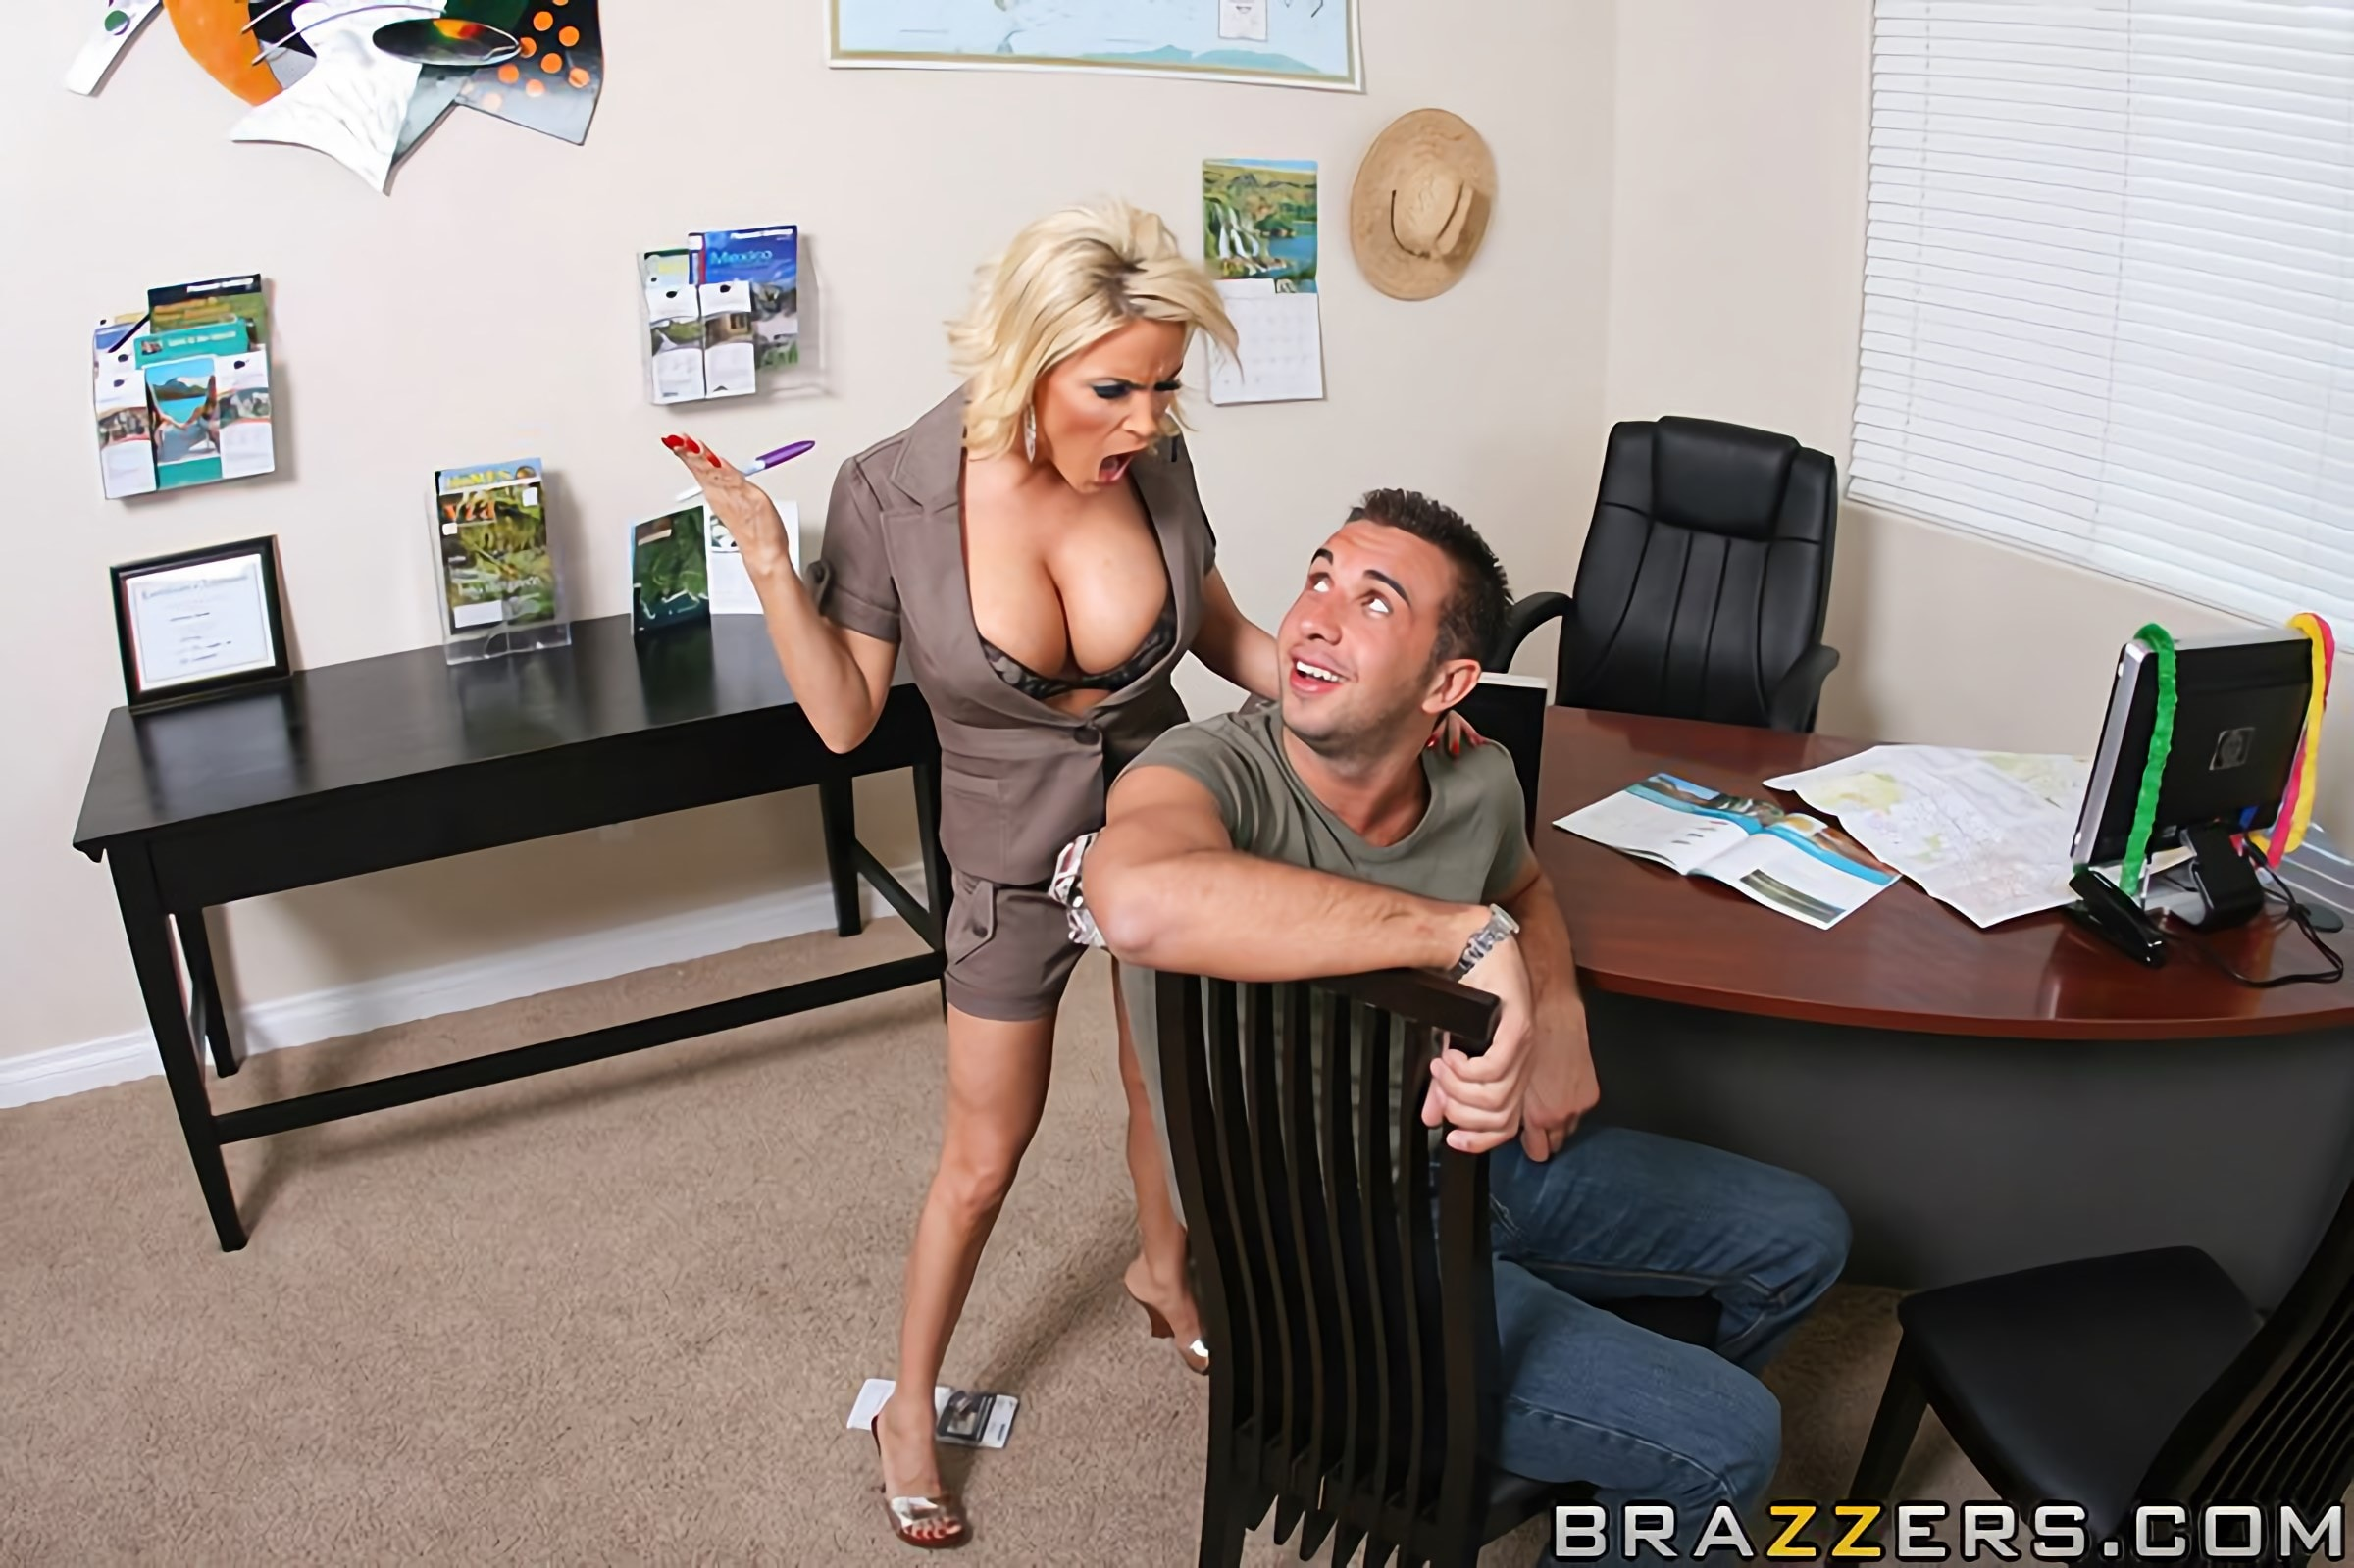 how much is brazzers worth